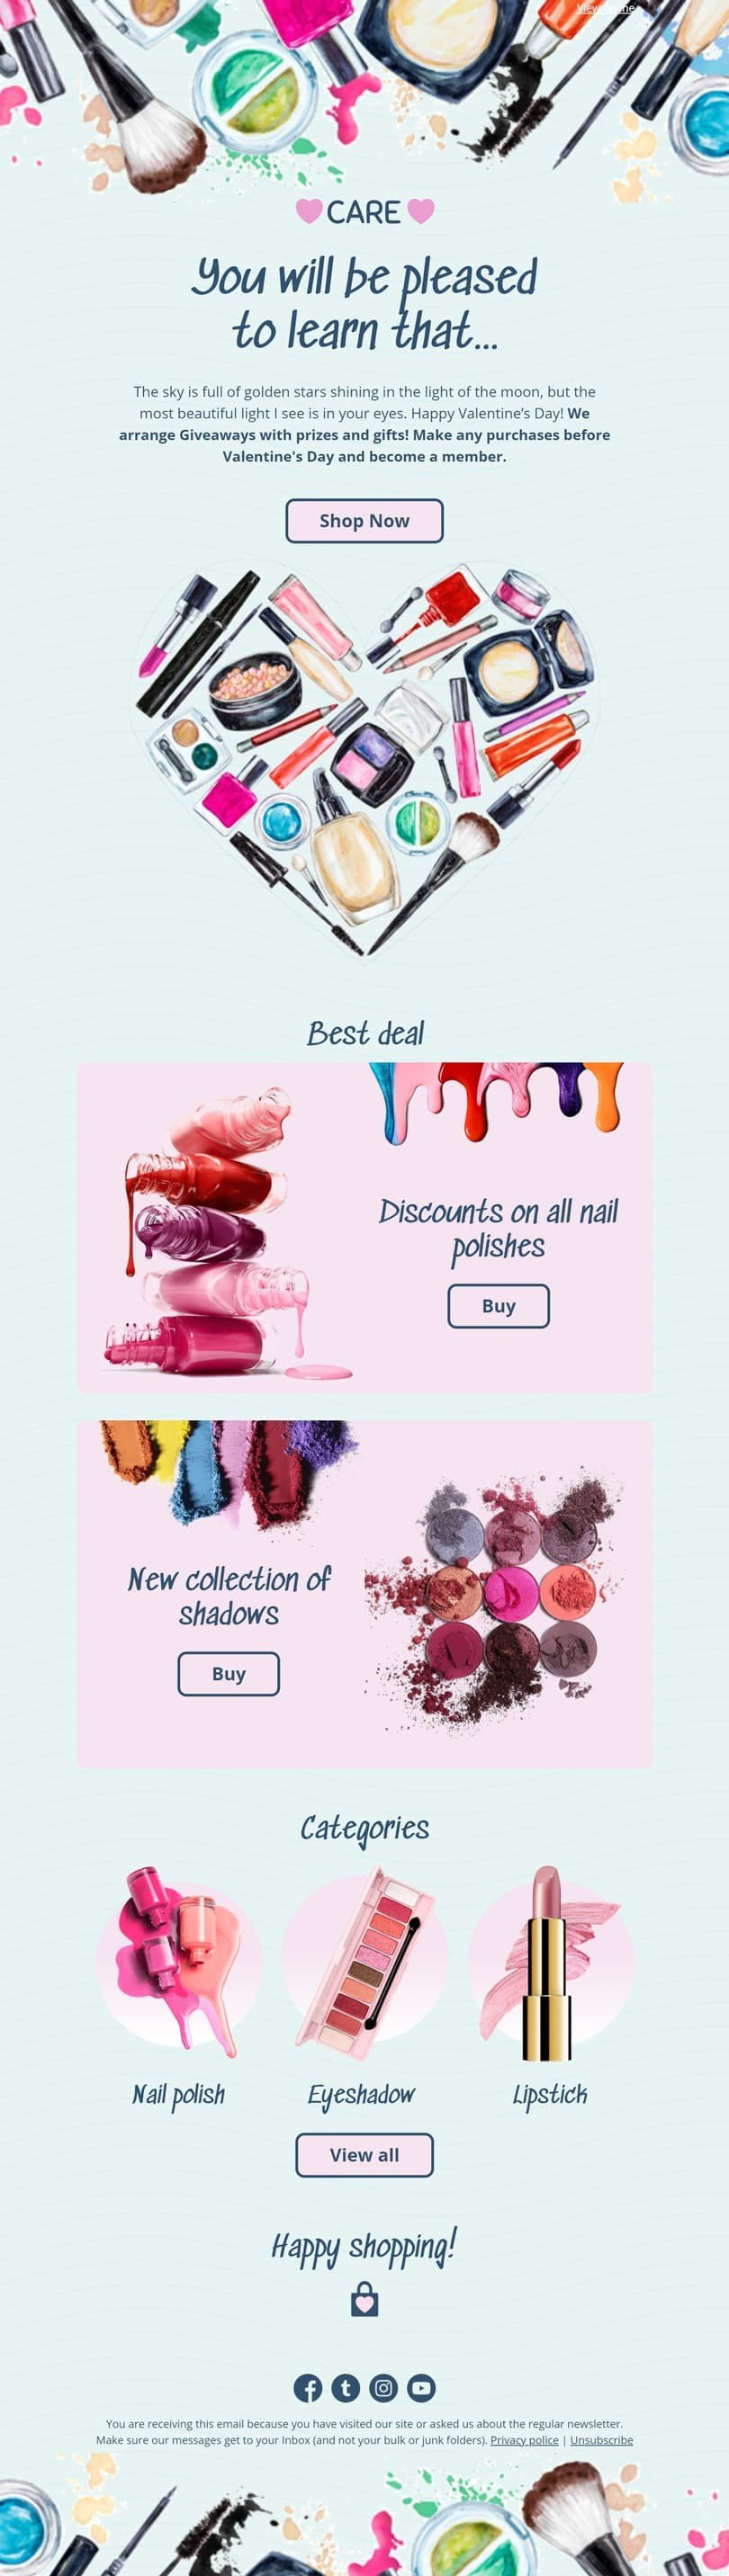 Valentine's Day Email Template «Care» for Beauty & Personal Care industry desktop view